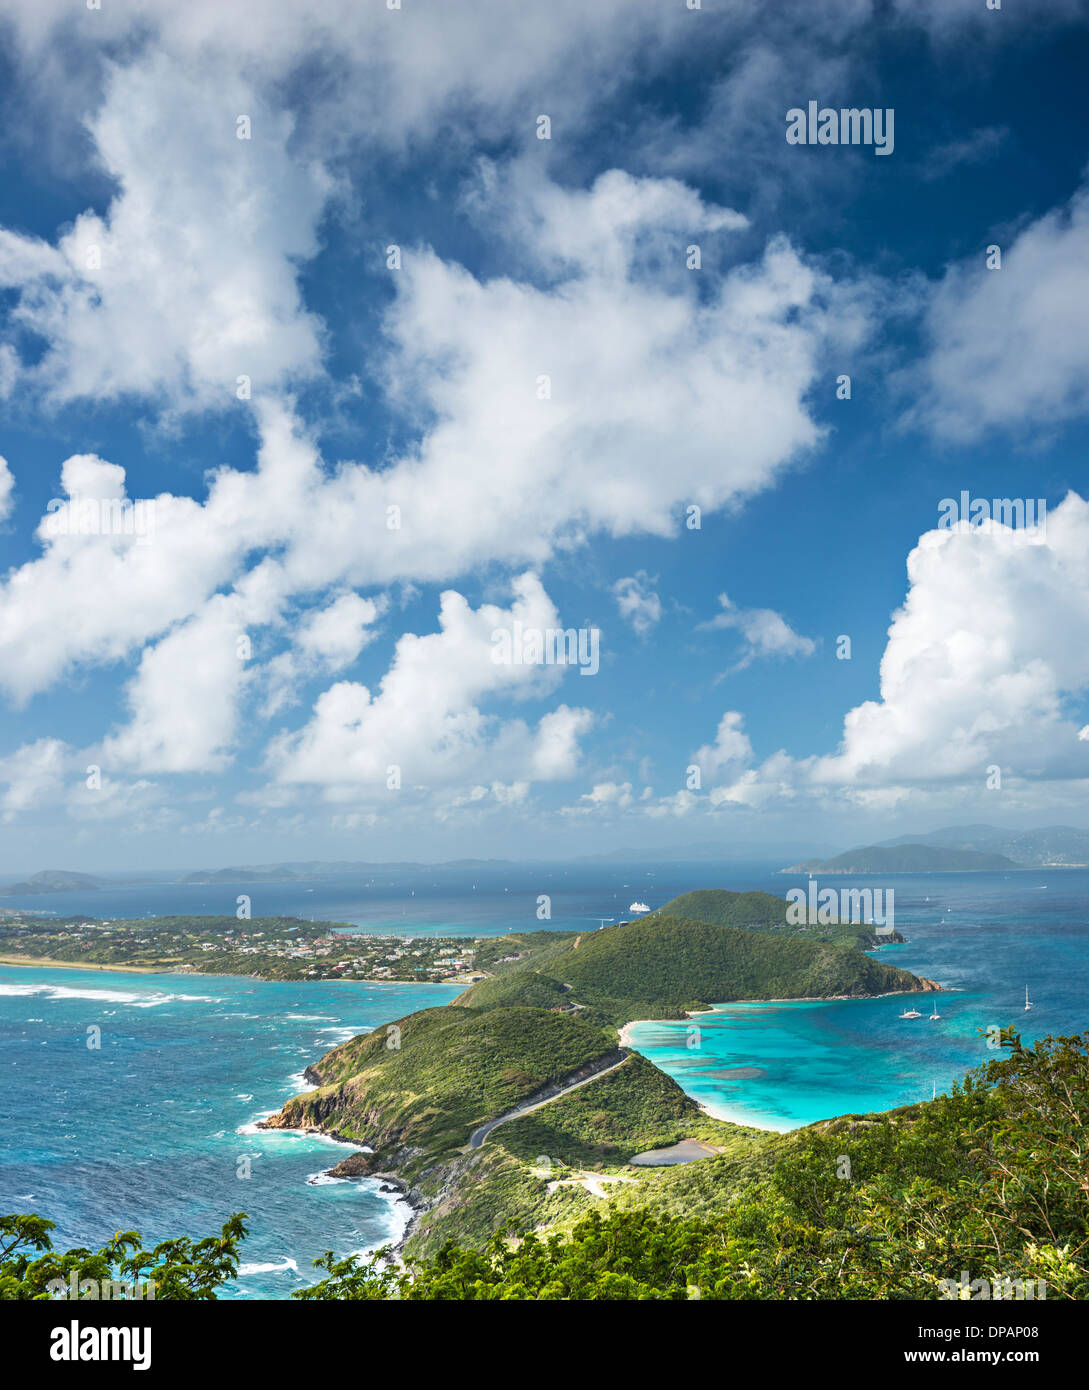 Virgin Gorda , British Virgin Islands in the Caribbean. - Stock Image